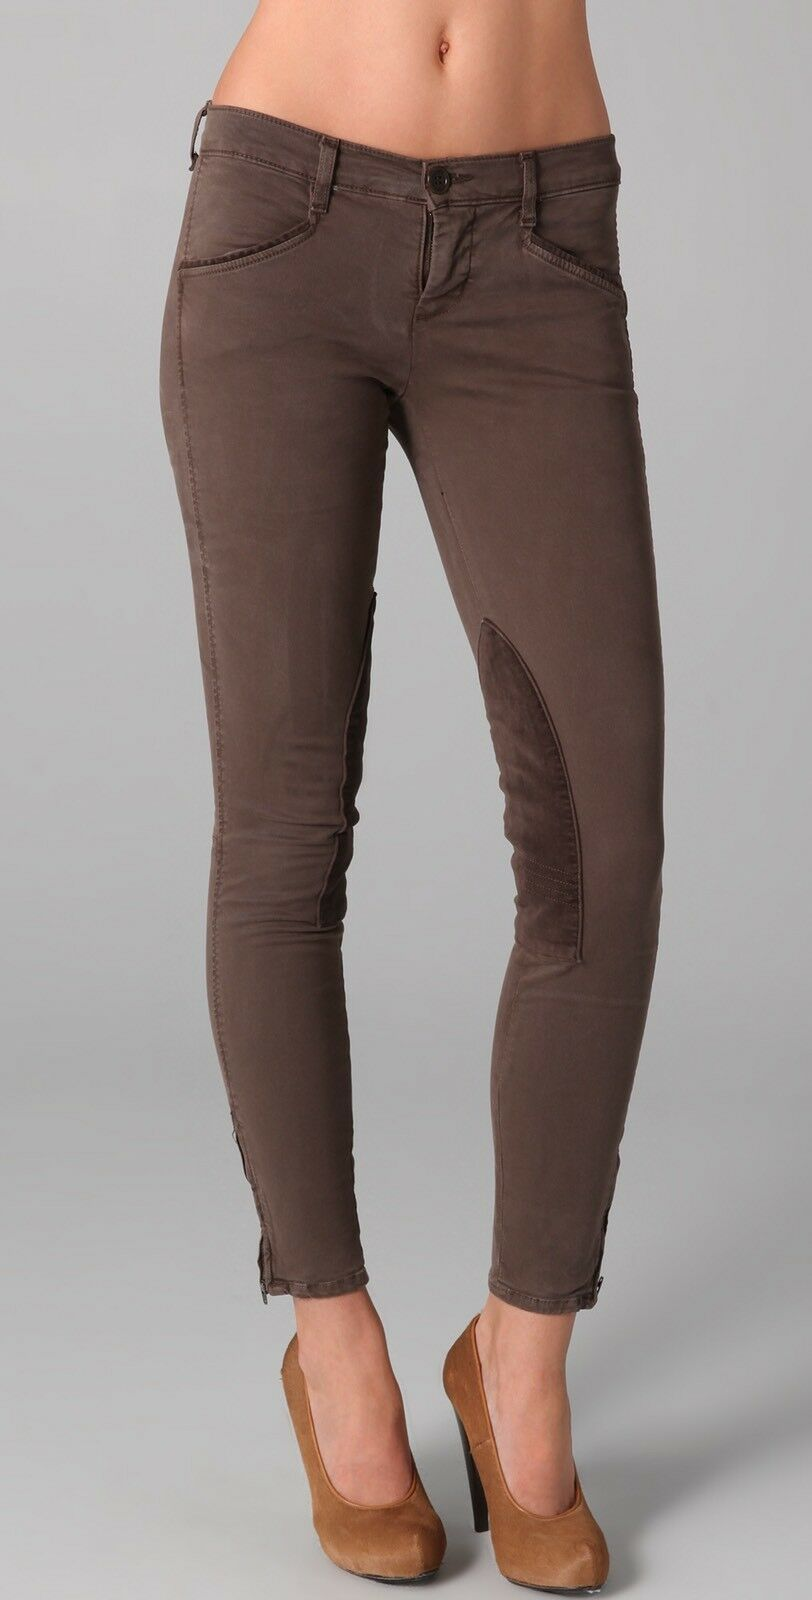 J Brand Riding Style Pants